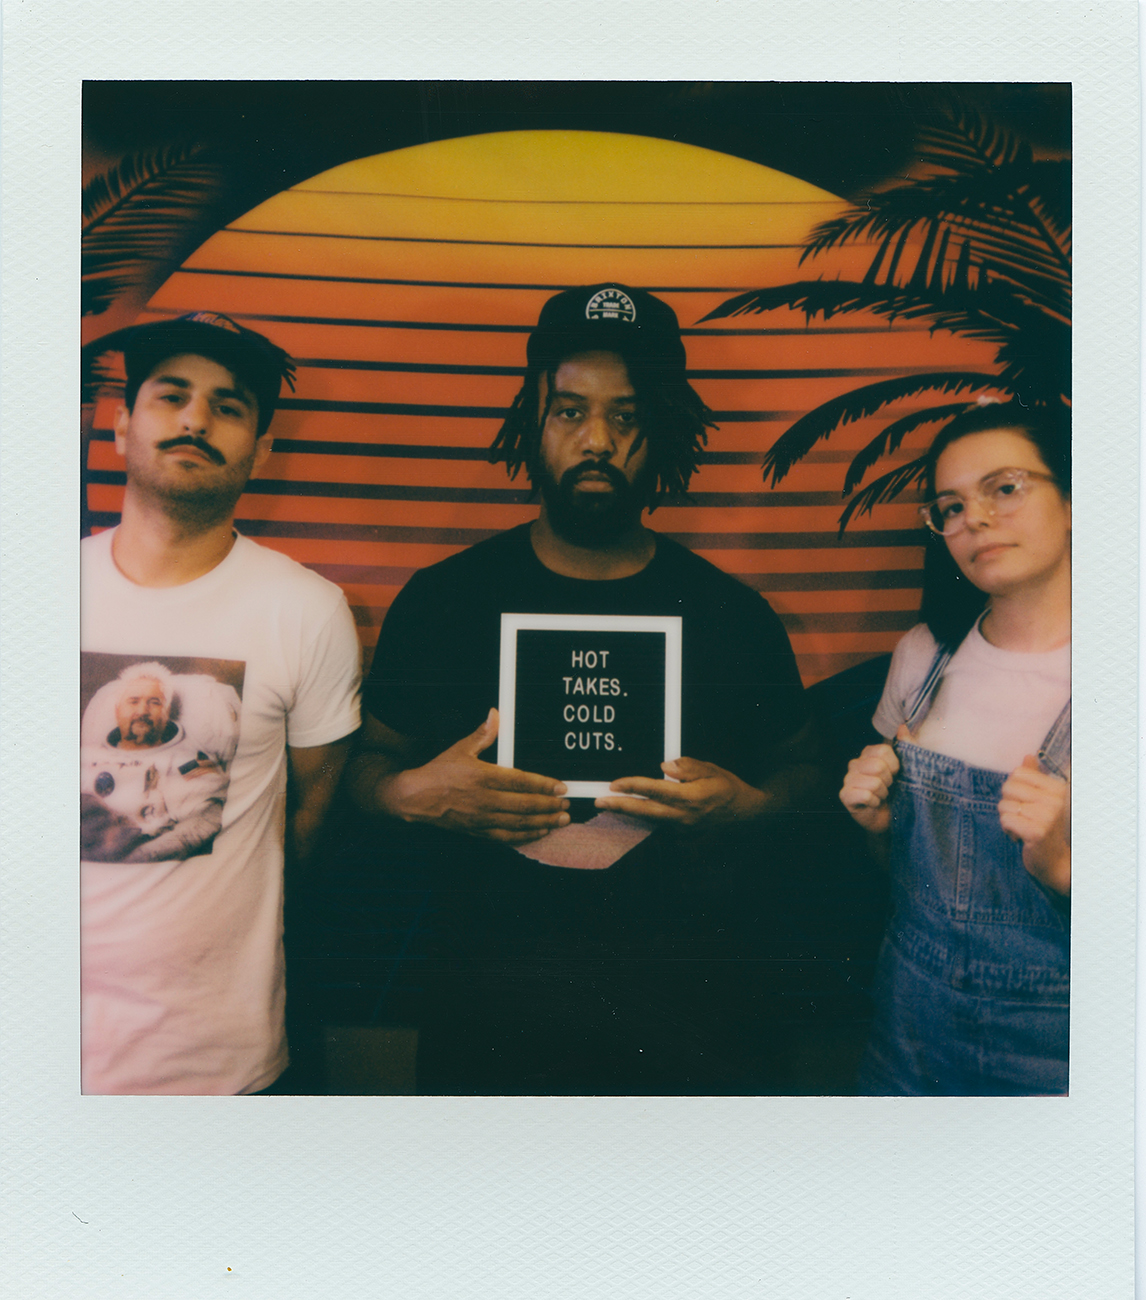 Mikey Fabian (culinary director and family meal chef), Jordan Anthony-Brown (chef and owner), and Willa Pelini (creative director and pastry chef/co-founder of Baker's Against Racism) / Image: Trevor Biggs{ }// Published: 11.13.20